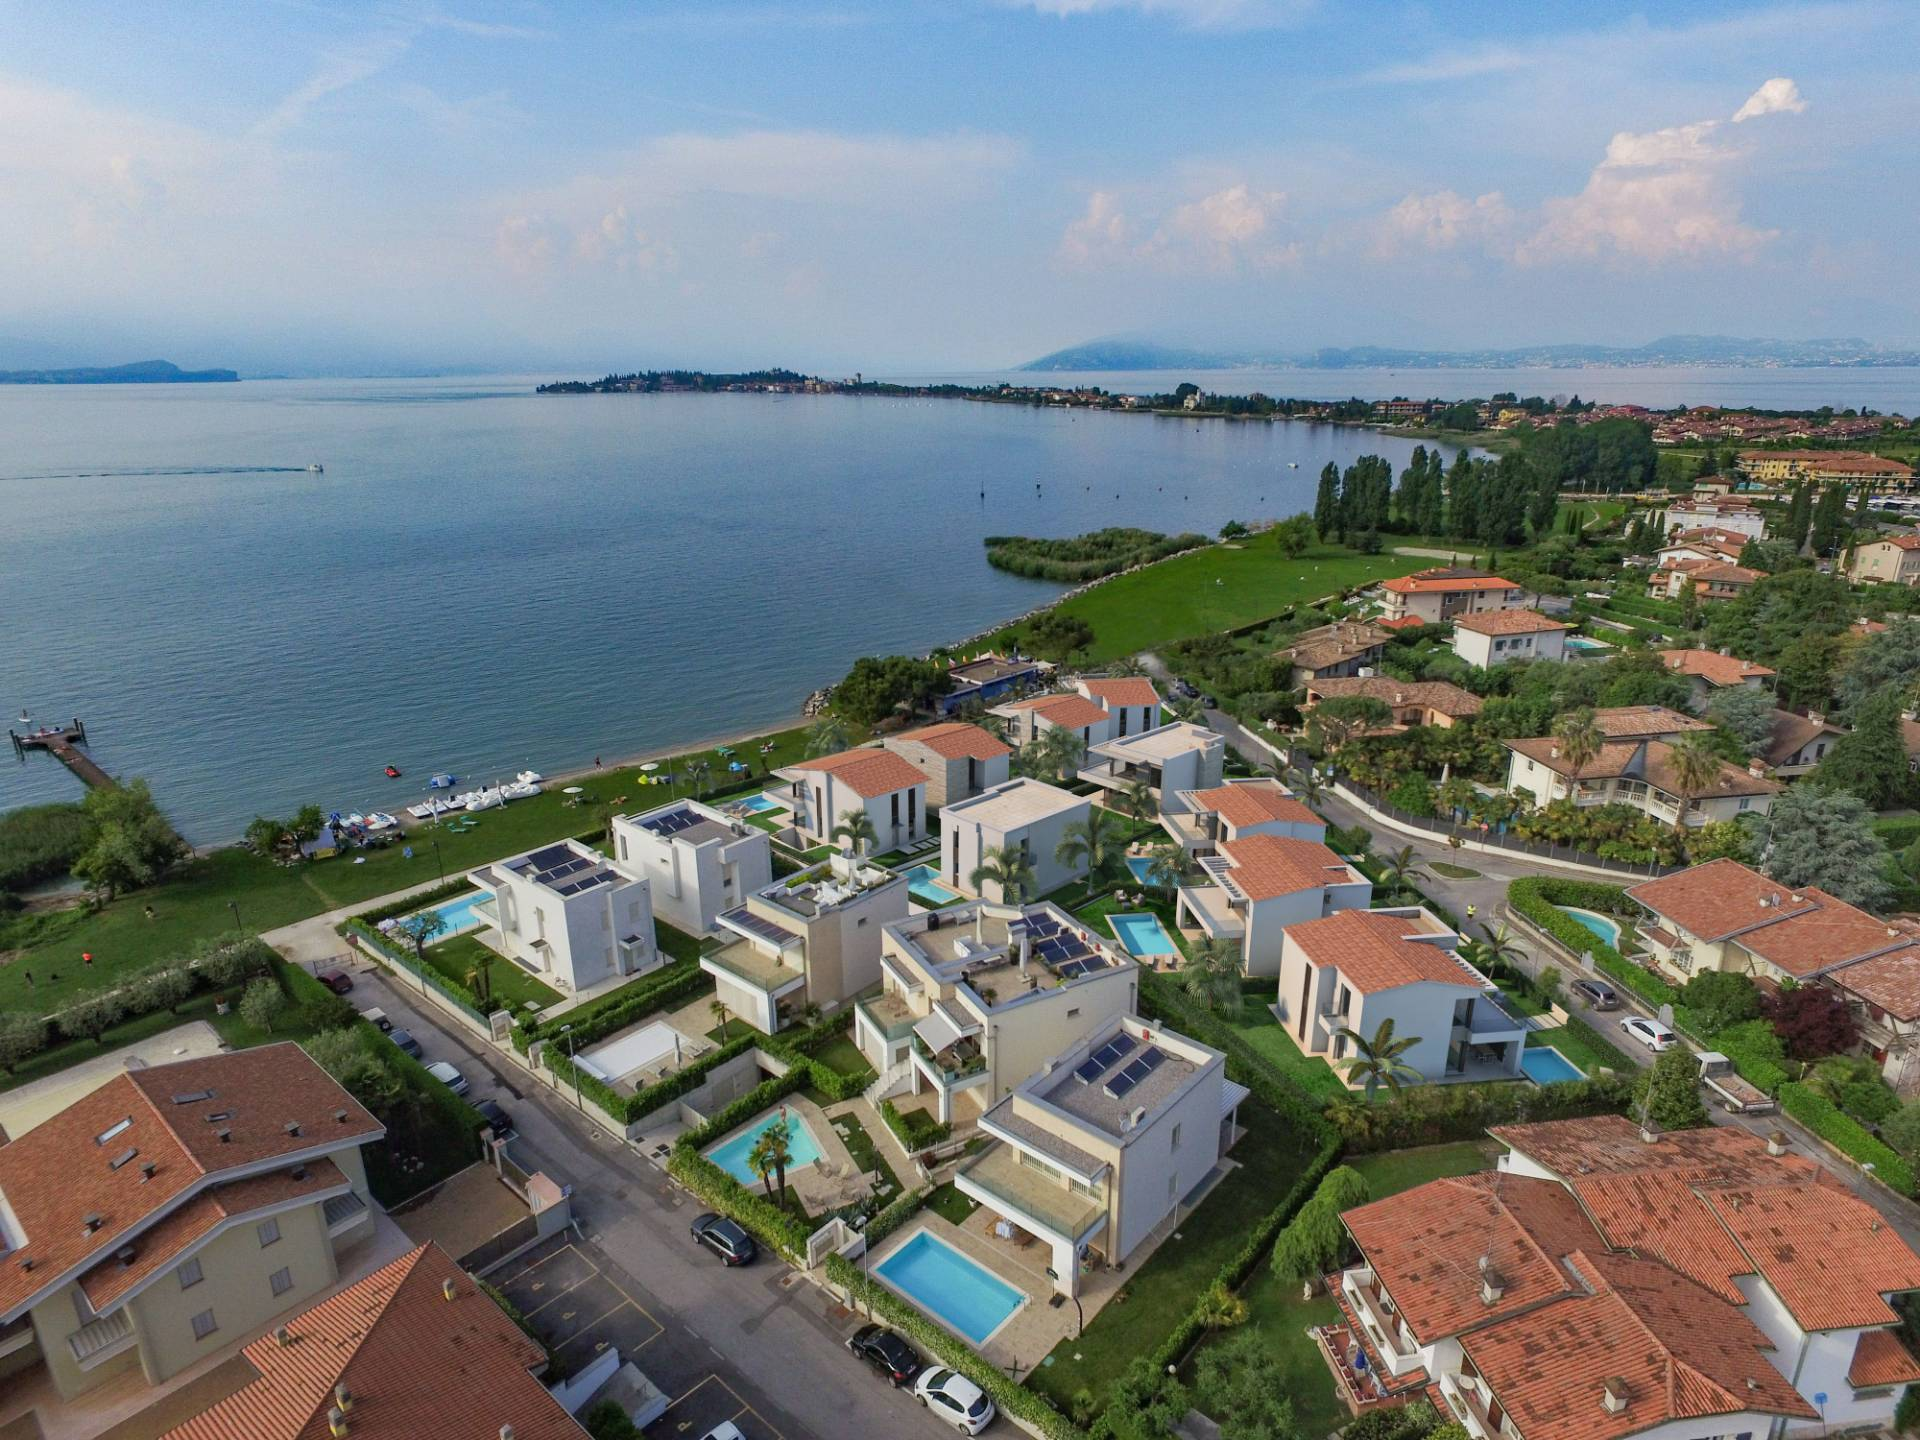 Residential complex to Sirmione